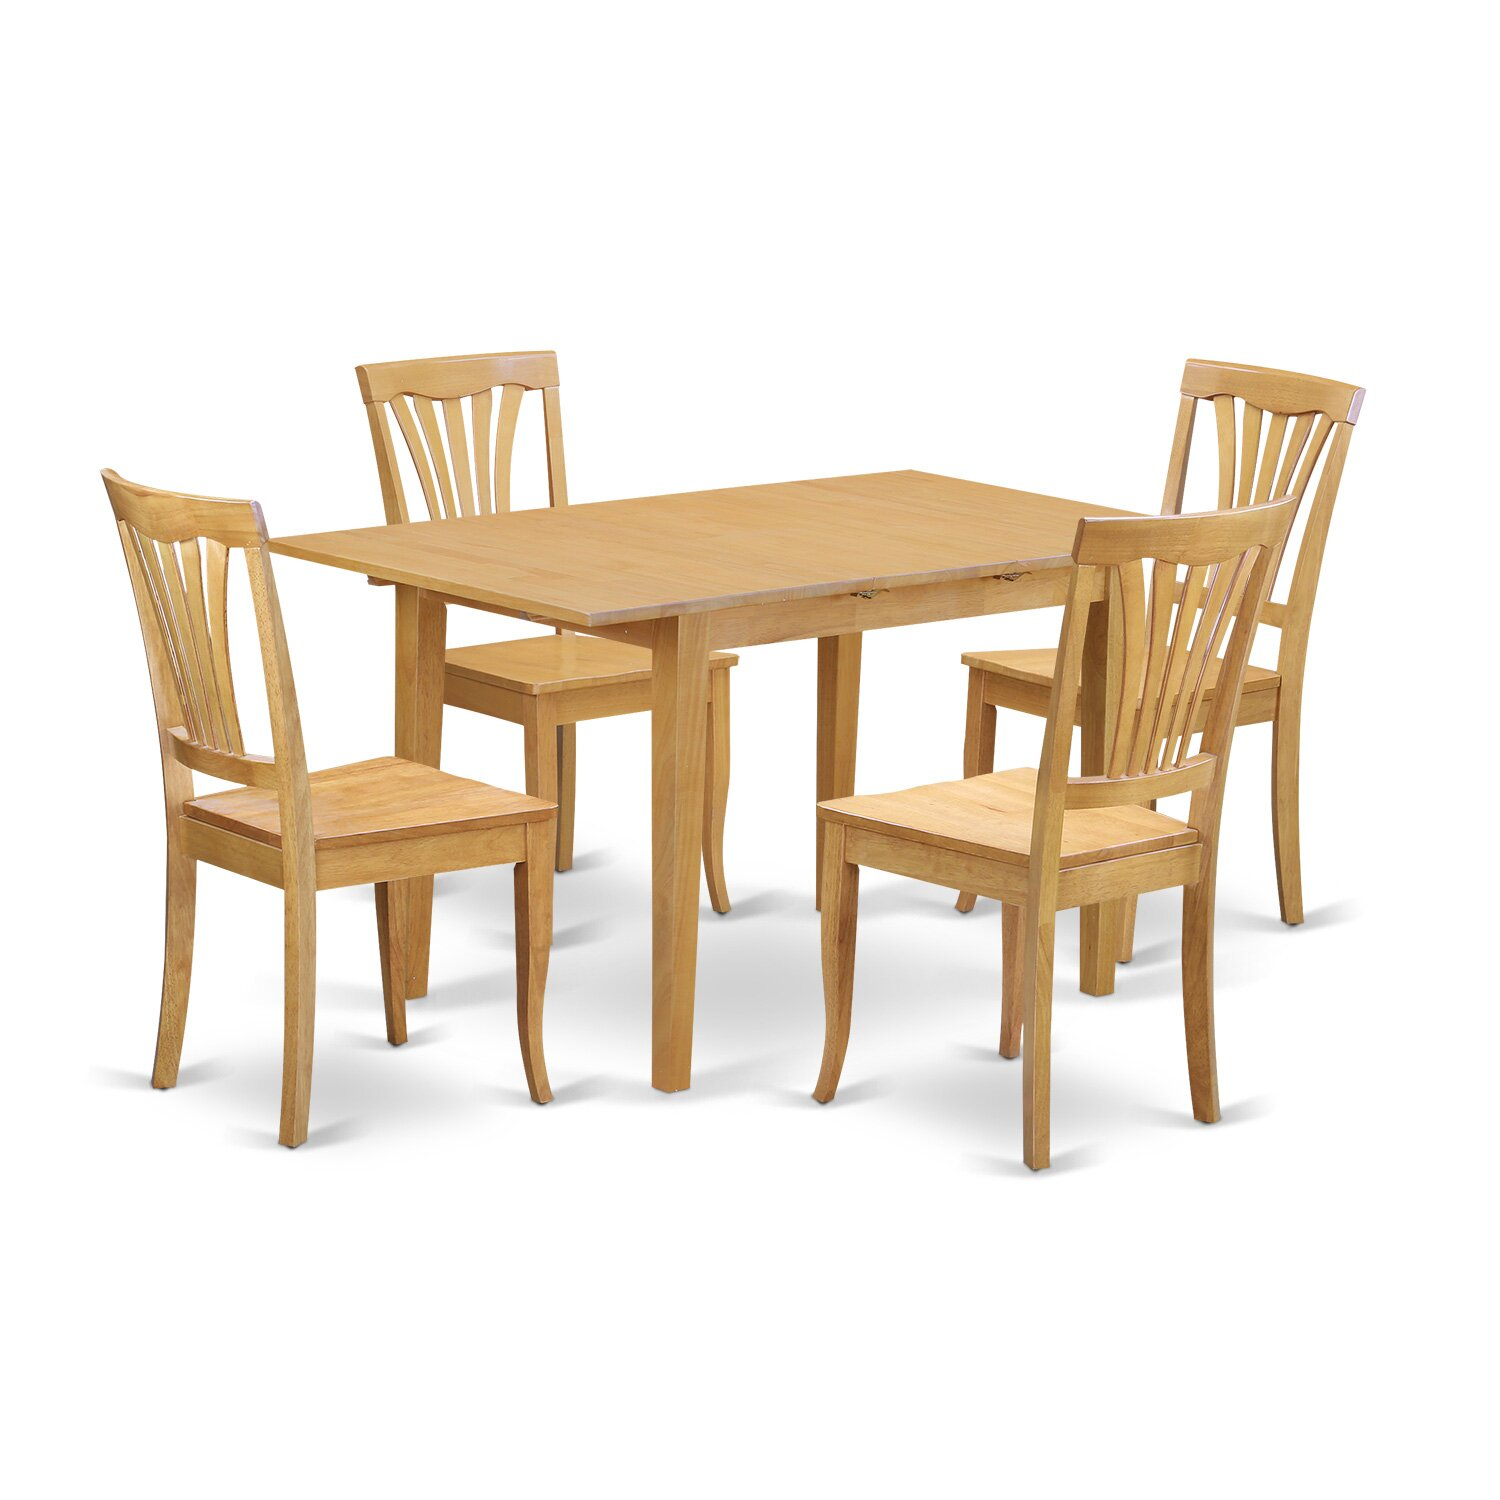 East west norfolk 5 piece dining set wayfair for 5 piece dining set